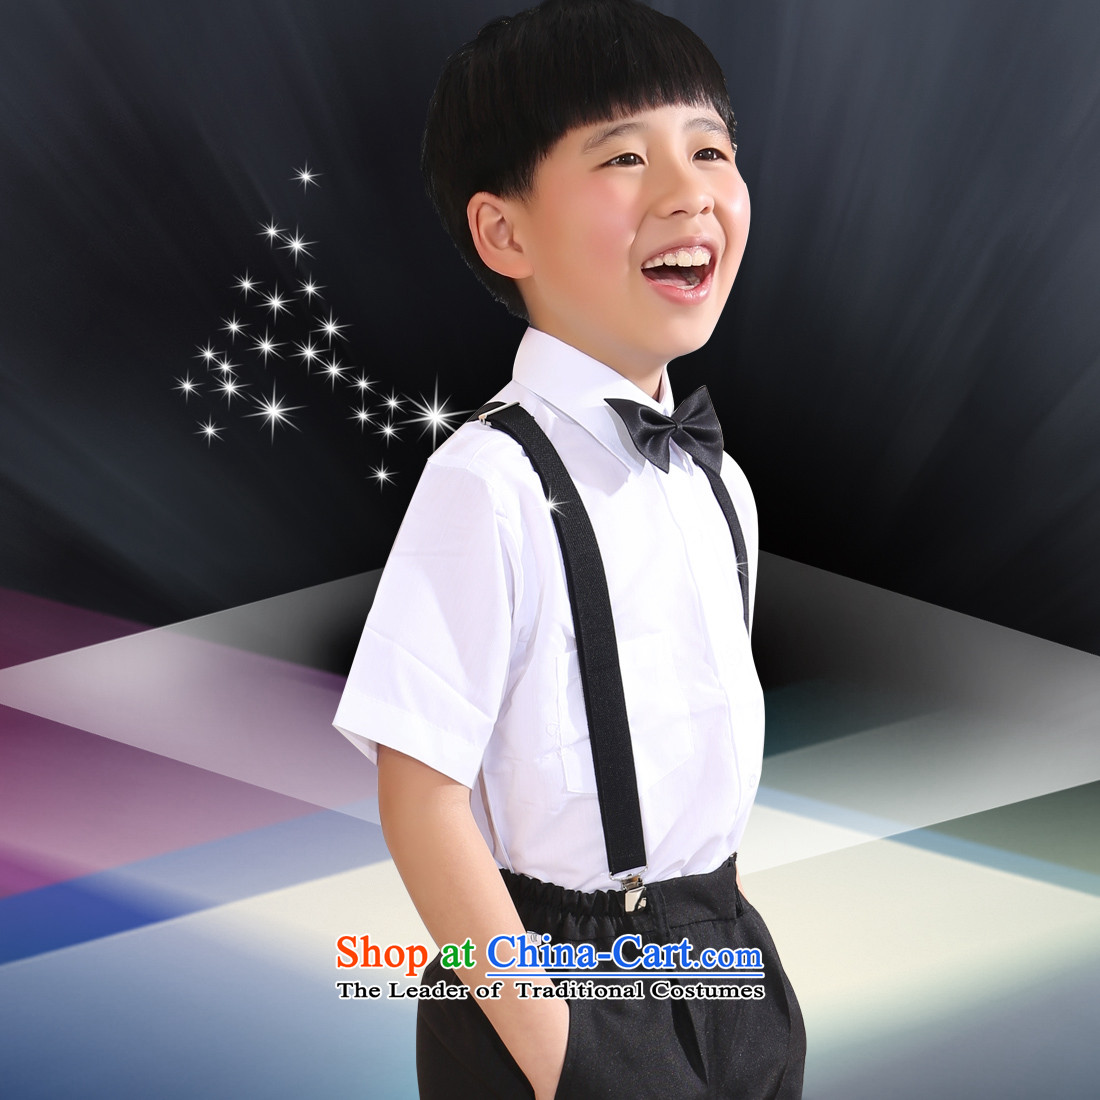 Recalling that disarmament 61 children's entertainment services Vicki dance school choir uniforms early childhood boy dress summer jumpsuits kit light gray聽155-165cm recommendation 16 Code